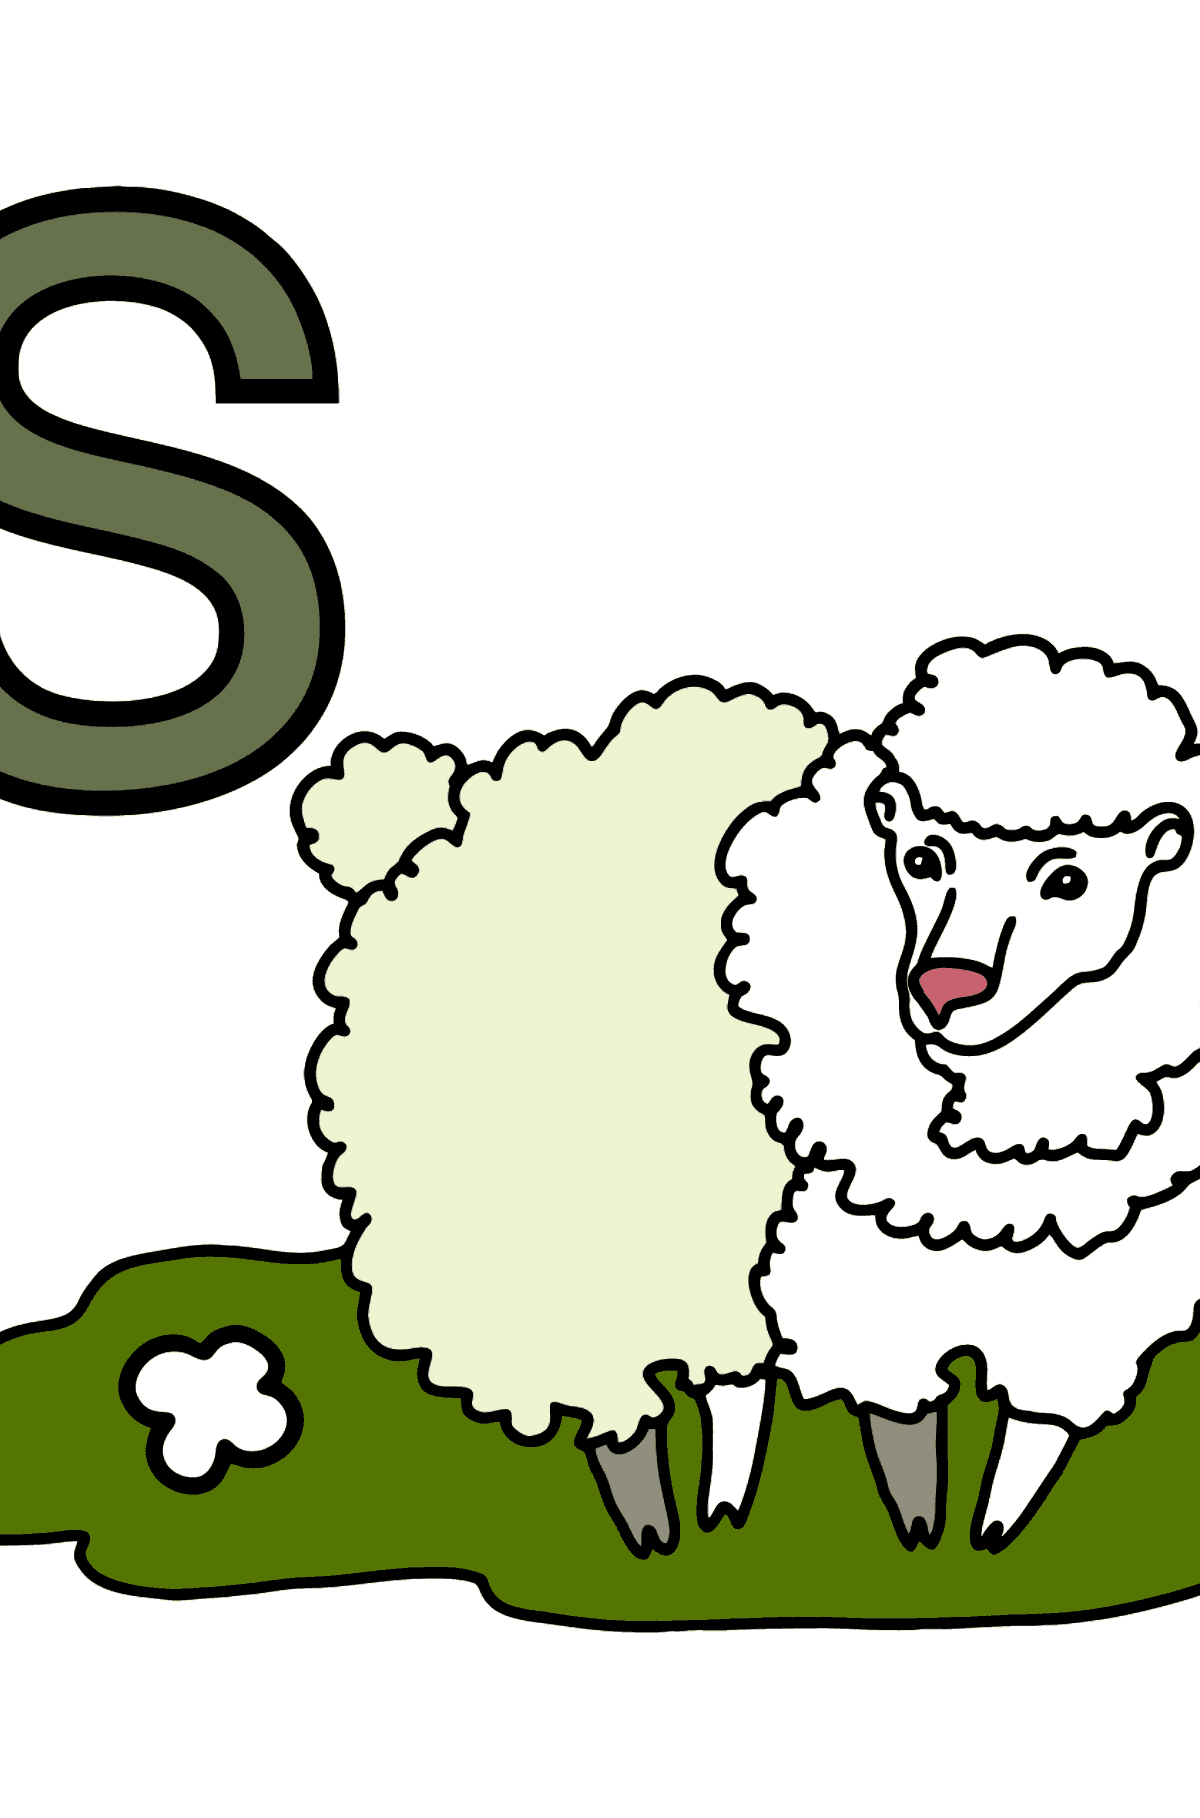 German Letter S coloring pages - SCHAF - Coloring Pages for Kids